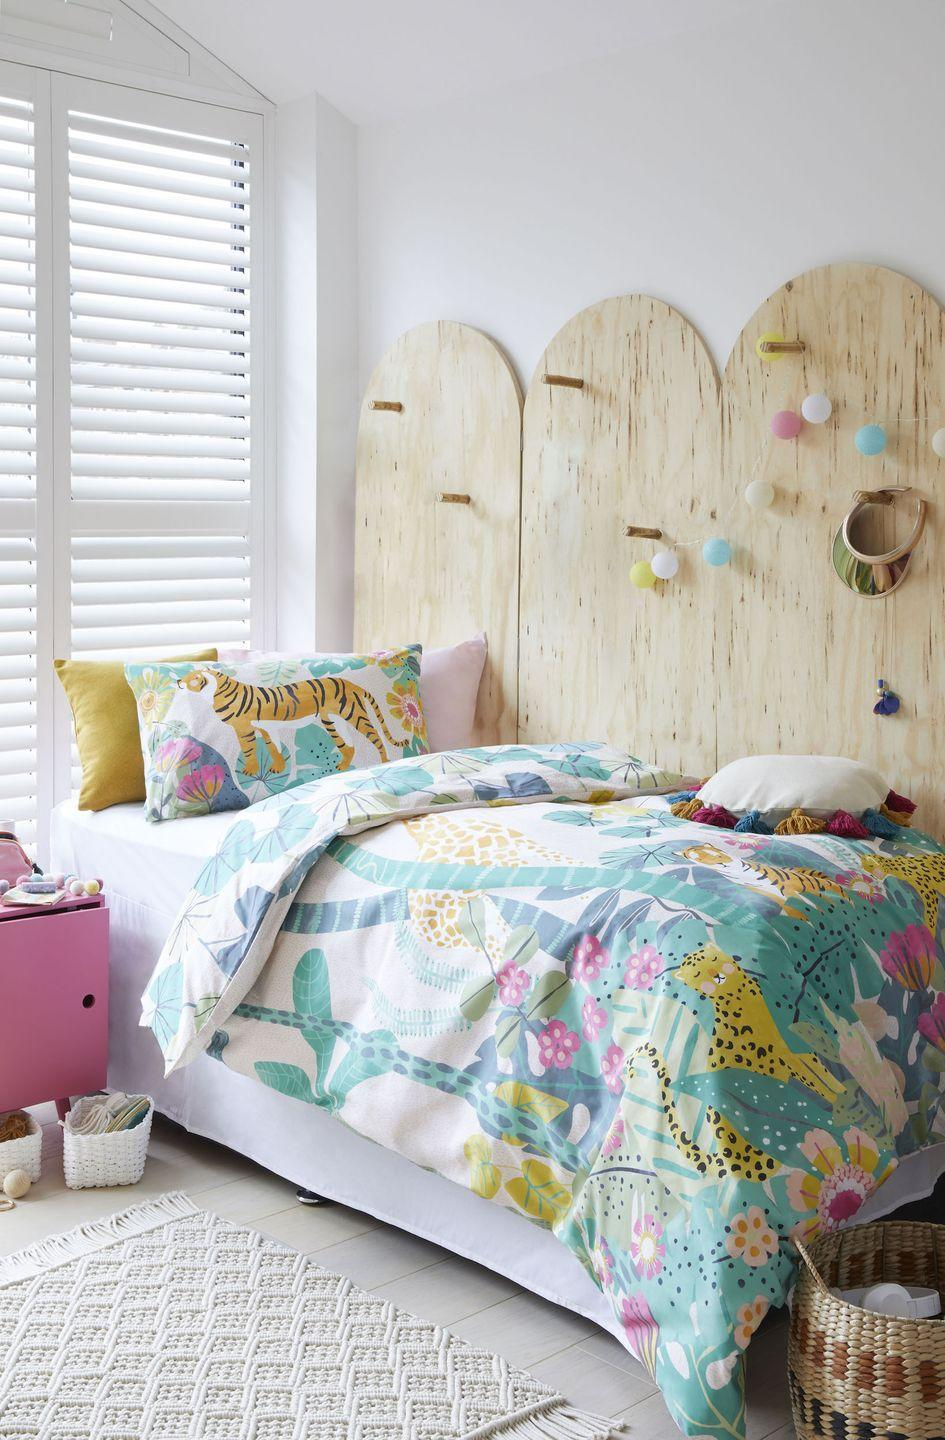 """<p>The beauty of an all-white girls' bedroom scheme is that it's essentially a blank canvas that can be changed up as and when. Bedding and accessories add the colour and pattern and look out for ways to make the space more individual. We love these plywood panels that can be used to hang things off; it's genius and it could be painted too if you want to add more colour.</p><p>Pictured: Equatorial bedding, <a href=""""https://go.redirectingat.com?id=127X1599956&url=https%3A%2F%2Fwww.dunelm.com%2Fproduct%2Fgreen-floral-reversible-100-cotton-duvet-cover-and-pillowcase-set-1000182129&sref=https%3A%2F%2Fwww.housebeautiful.com%2Fuk%2Fdecorate%2Fbedroom%2Fg35589644%2Fgirls-bedroom-ideas%2F"""" rel=""""nofollow noopener"""" target=""""_blank"""" data-ylk=""""slk:Dunelm"""" class=""""link rapid-noclick-resp"""">Dunelm</a></p>"""